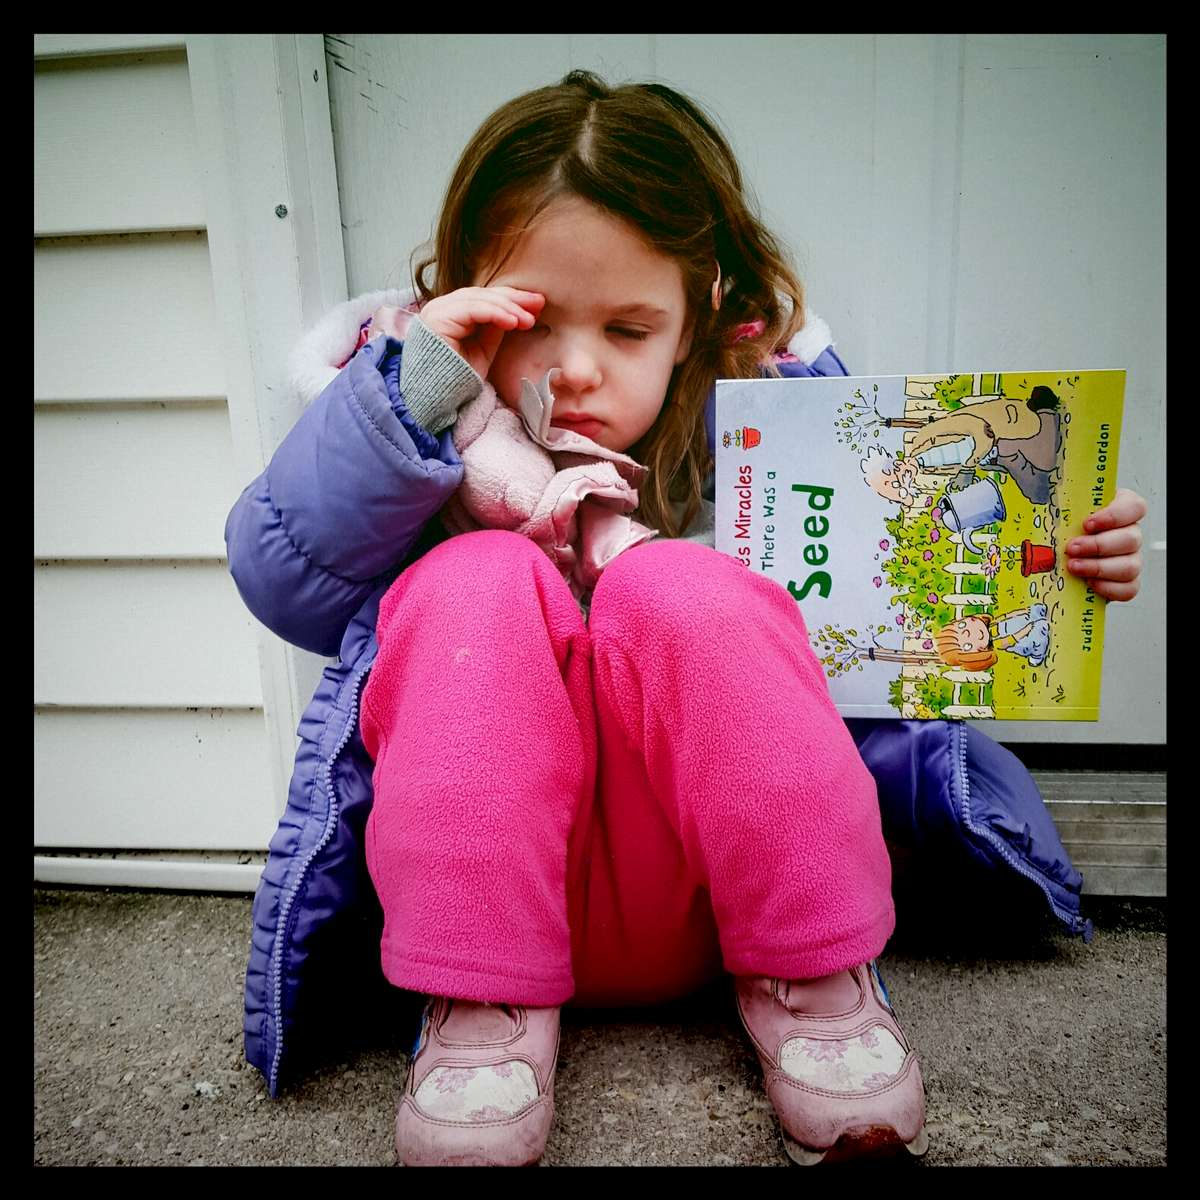 Rose rubbing her eyes after a bad night of sleep. She almost forgot her book for school. March 2016.